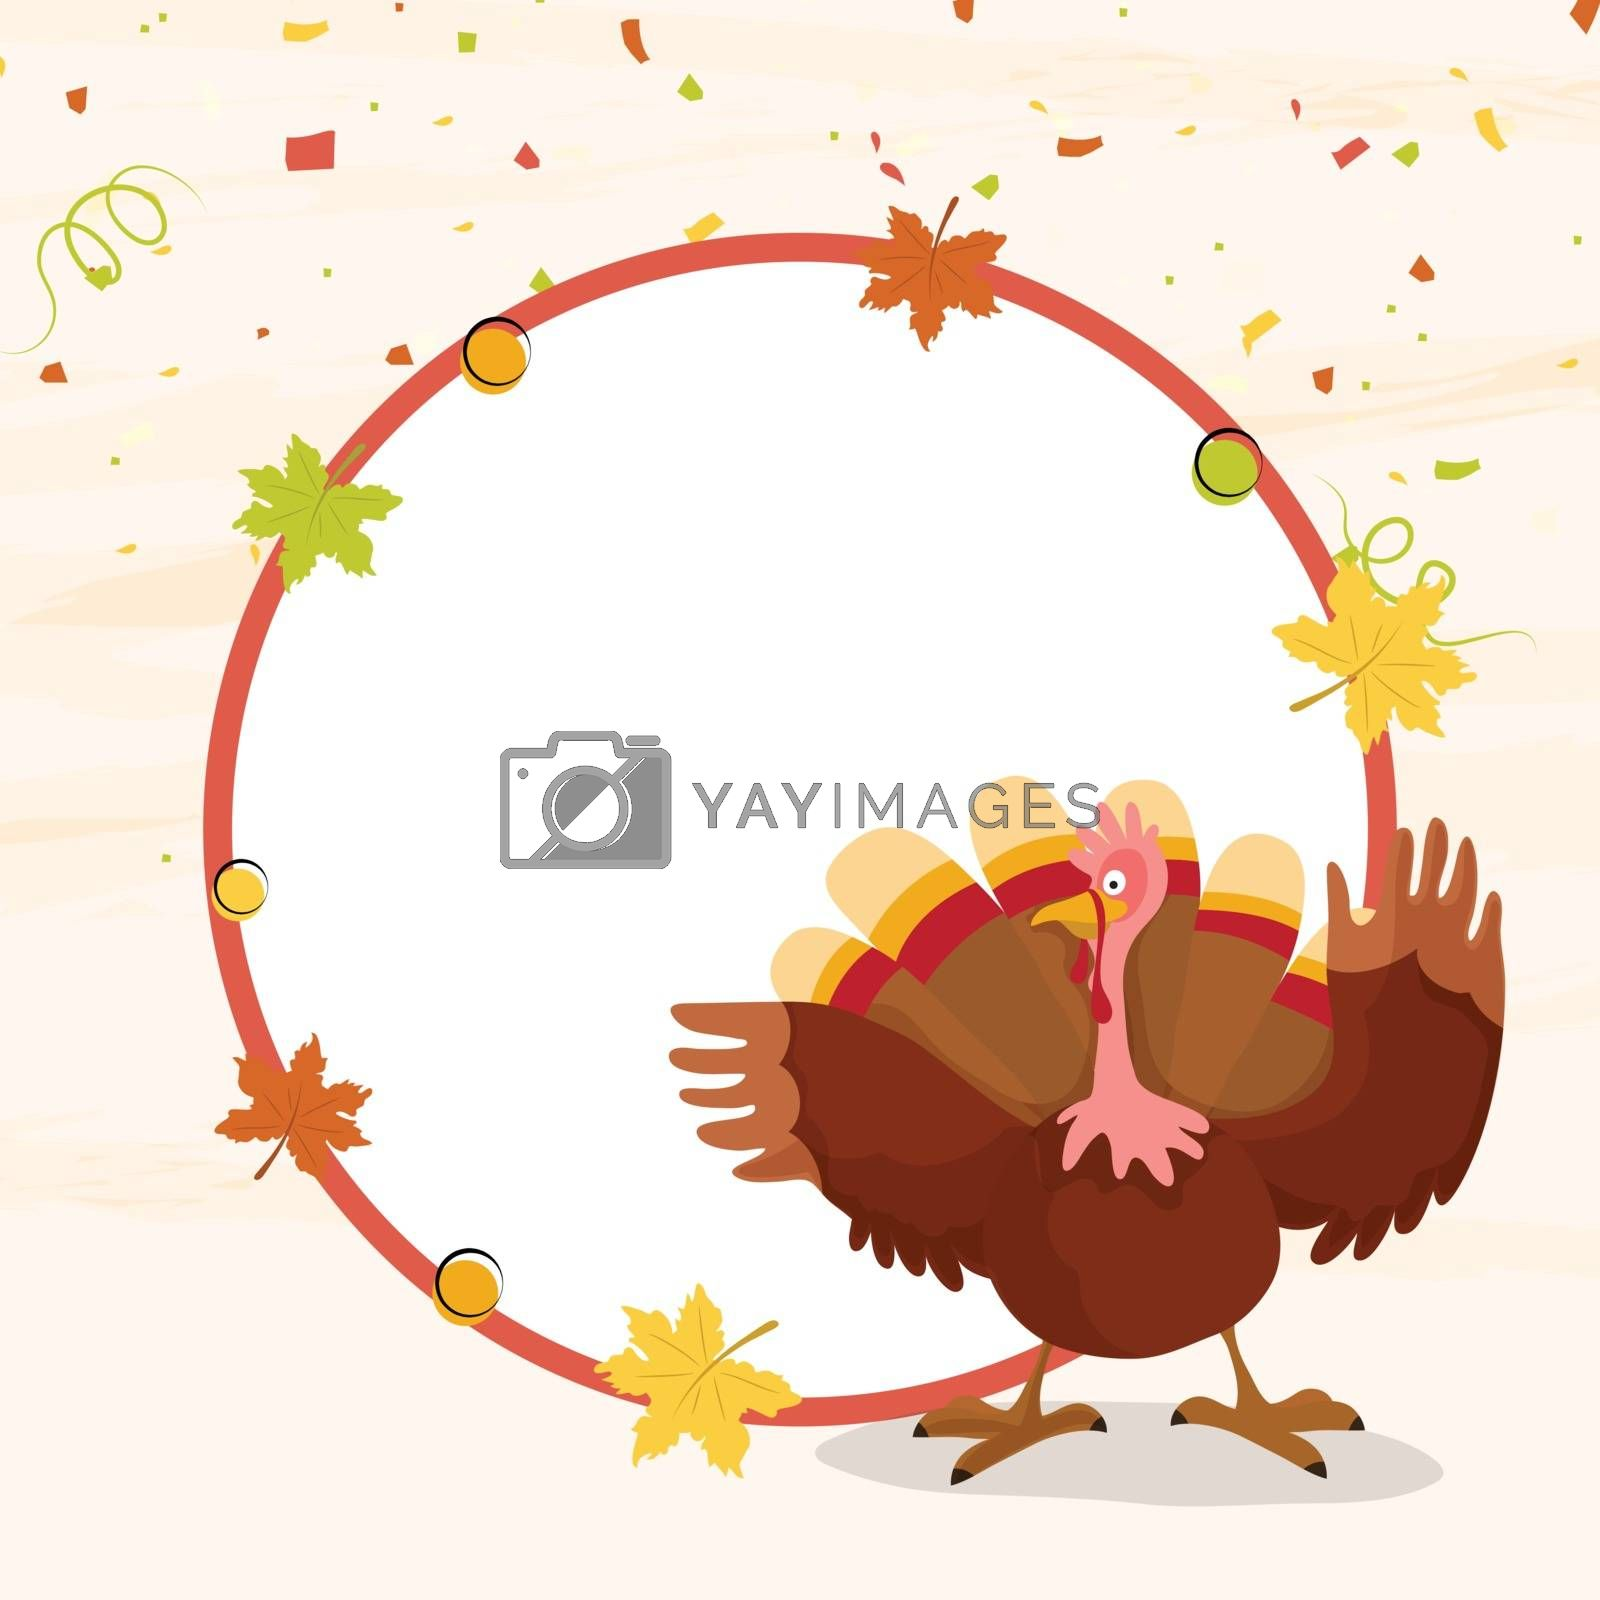 Turkey Bird on maple leaves decorated background. Greeting Card with space for your text. Vector illustration for Happy Thanksgiving Day celebration.